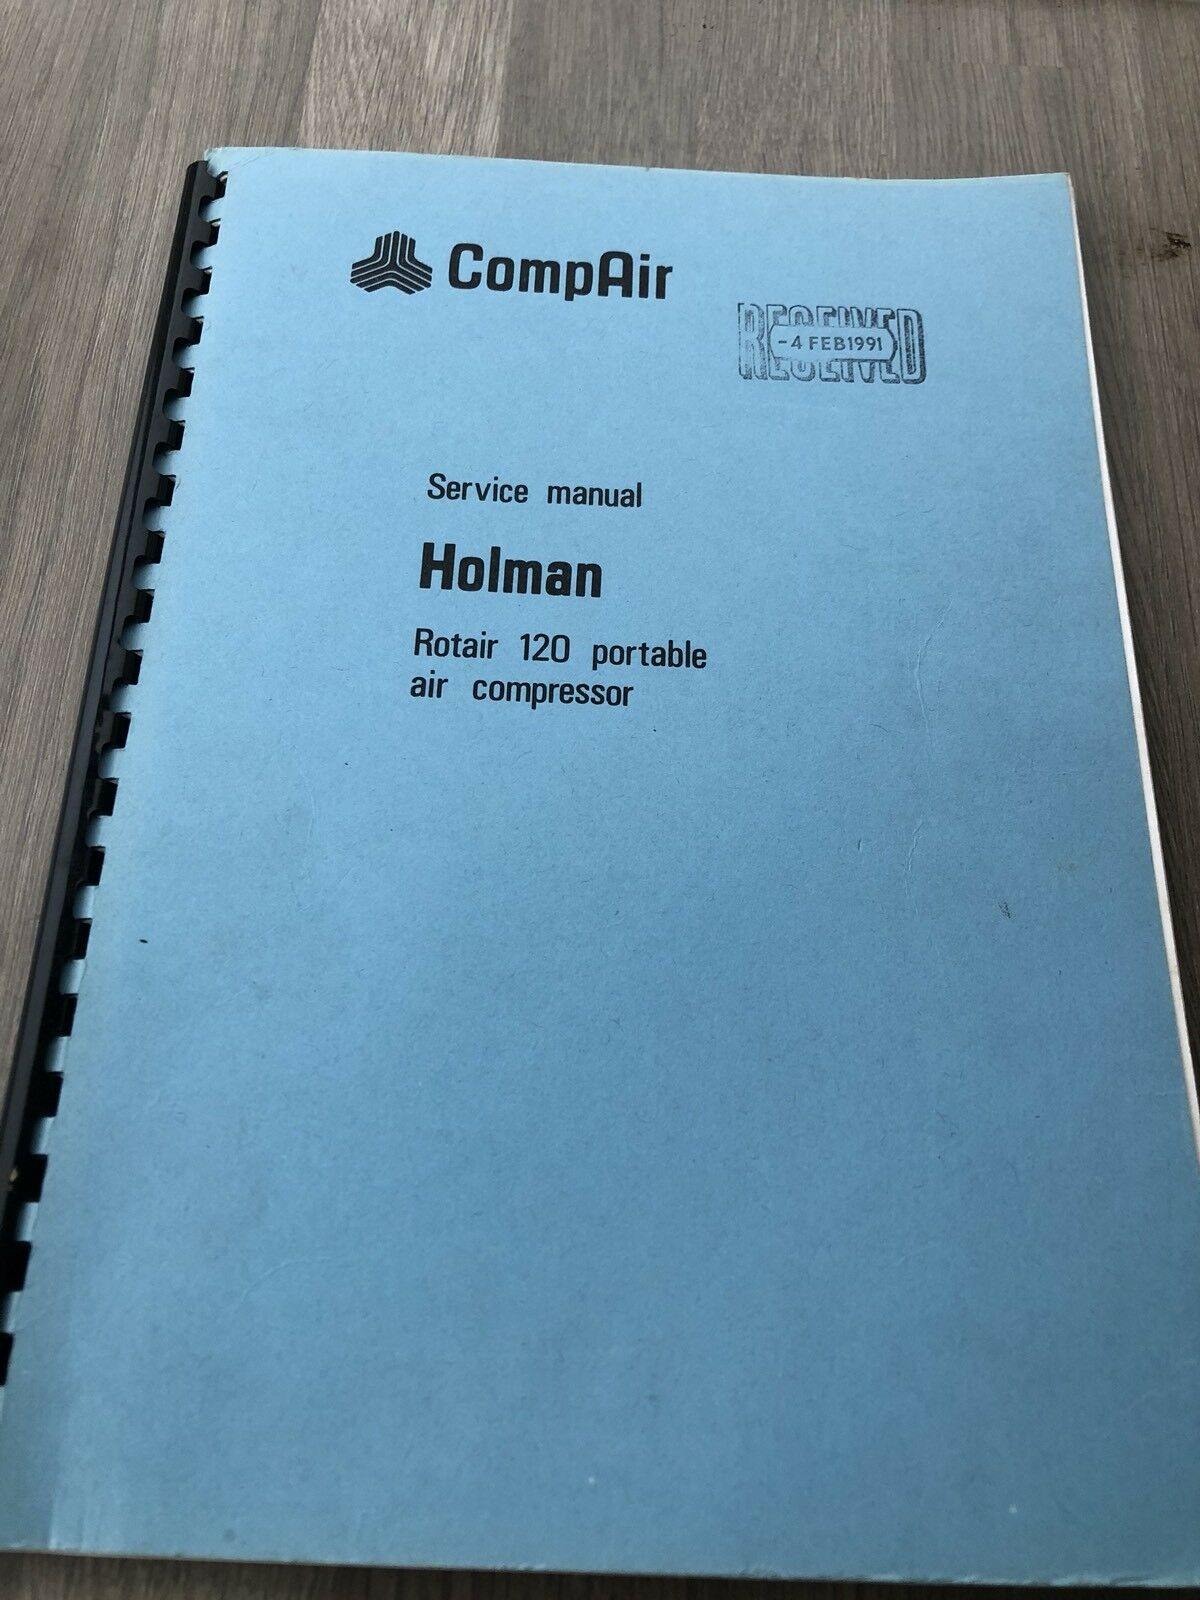 Compair Holman Rotair 120 Portable Air Compressor 1200Cfm Service Manual  Incv 1 of 7Only 1 available ...